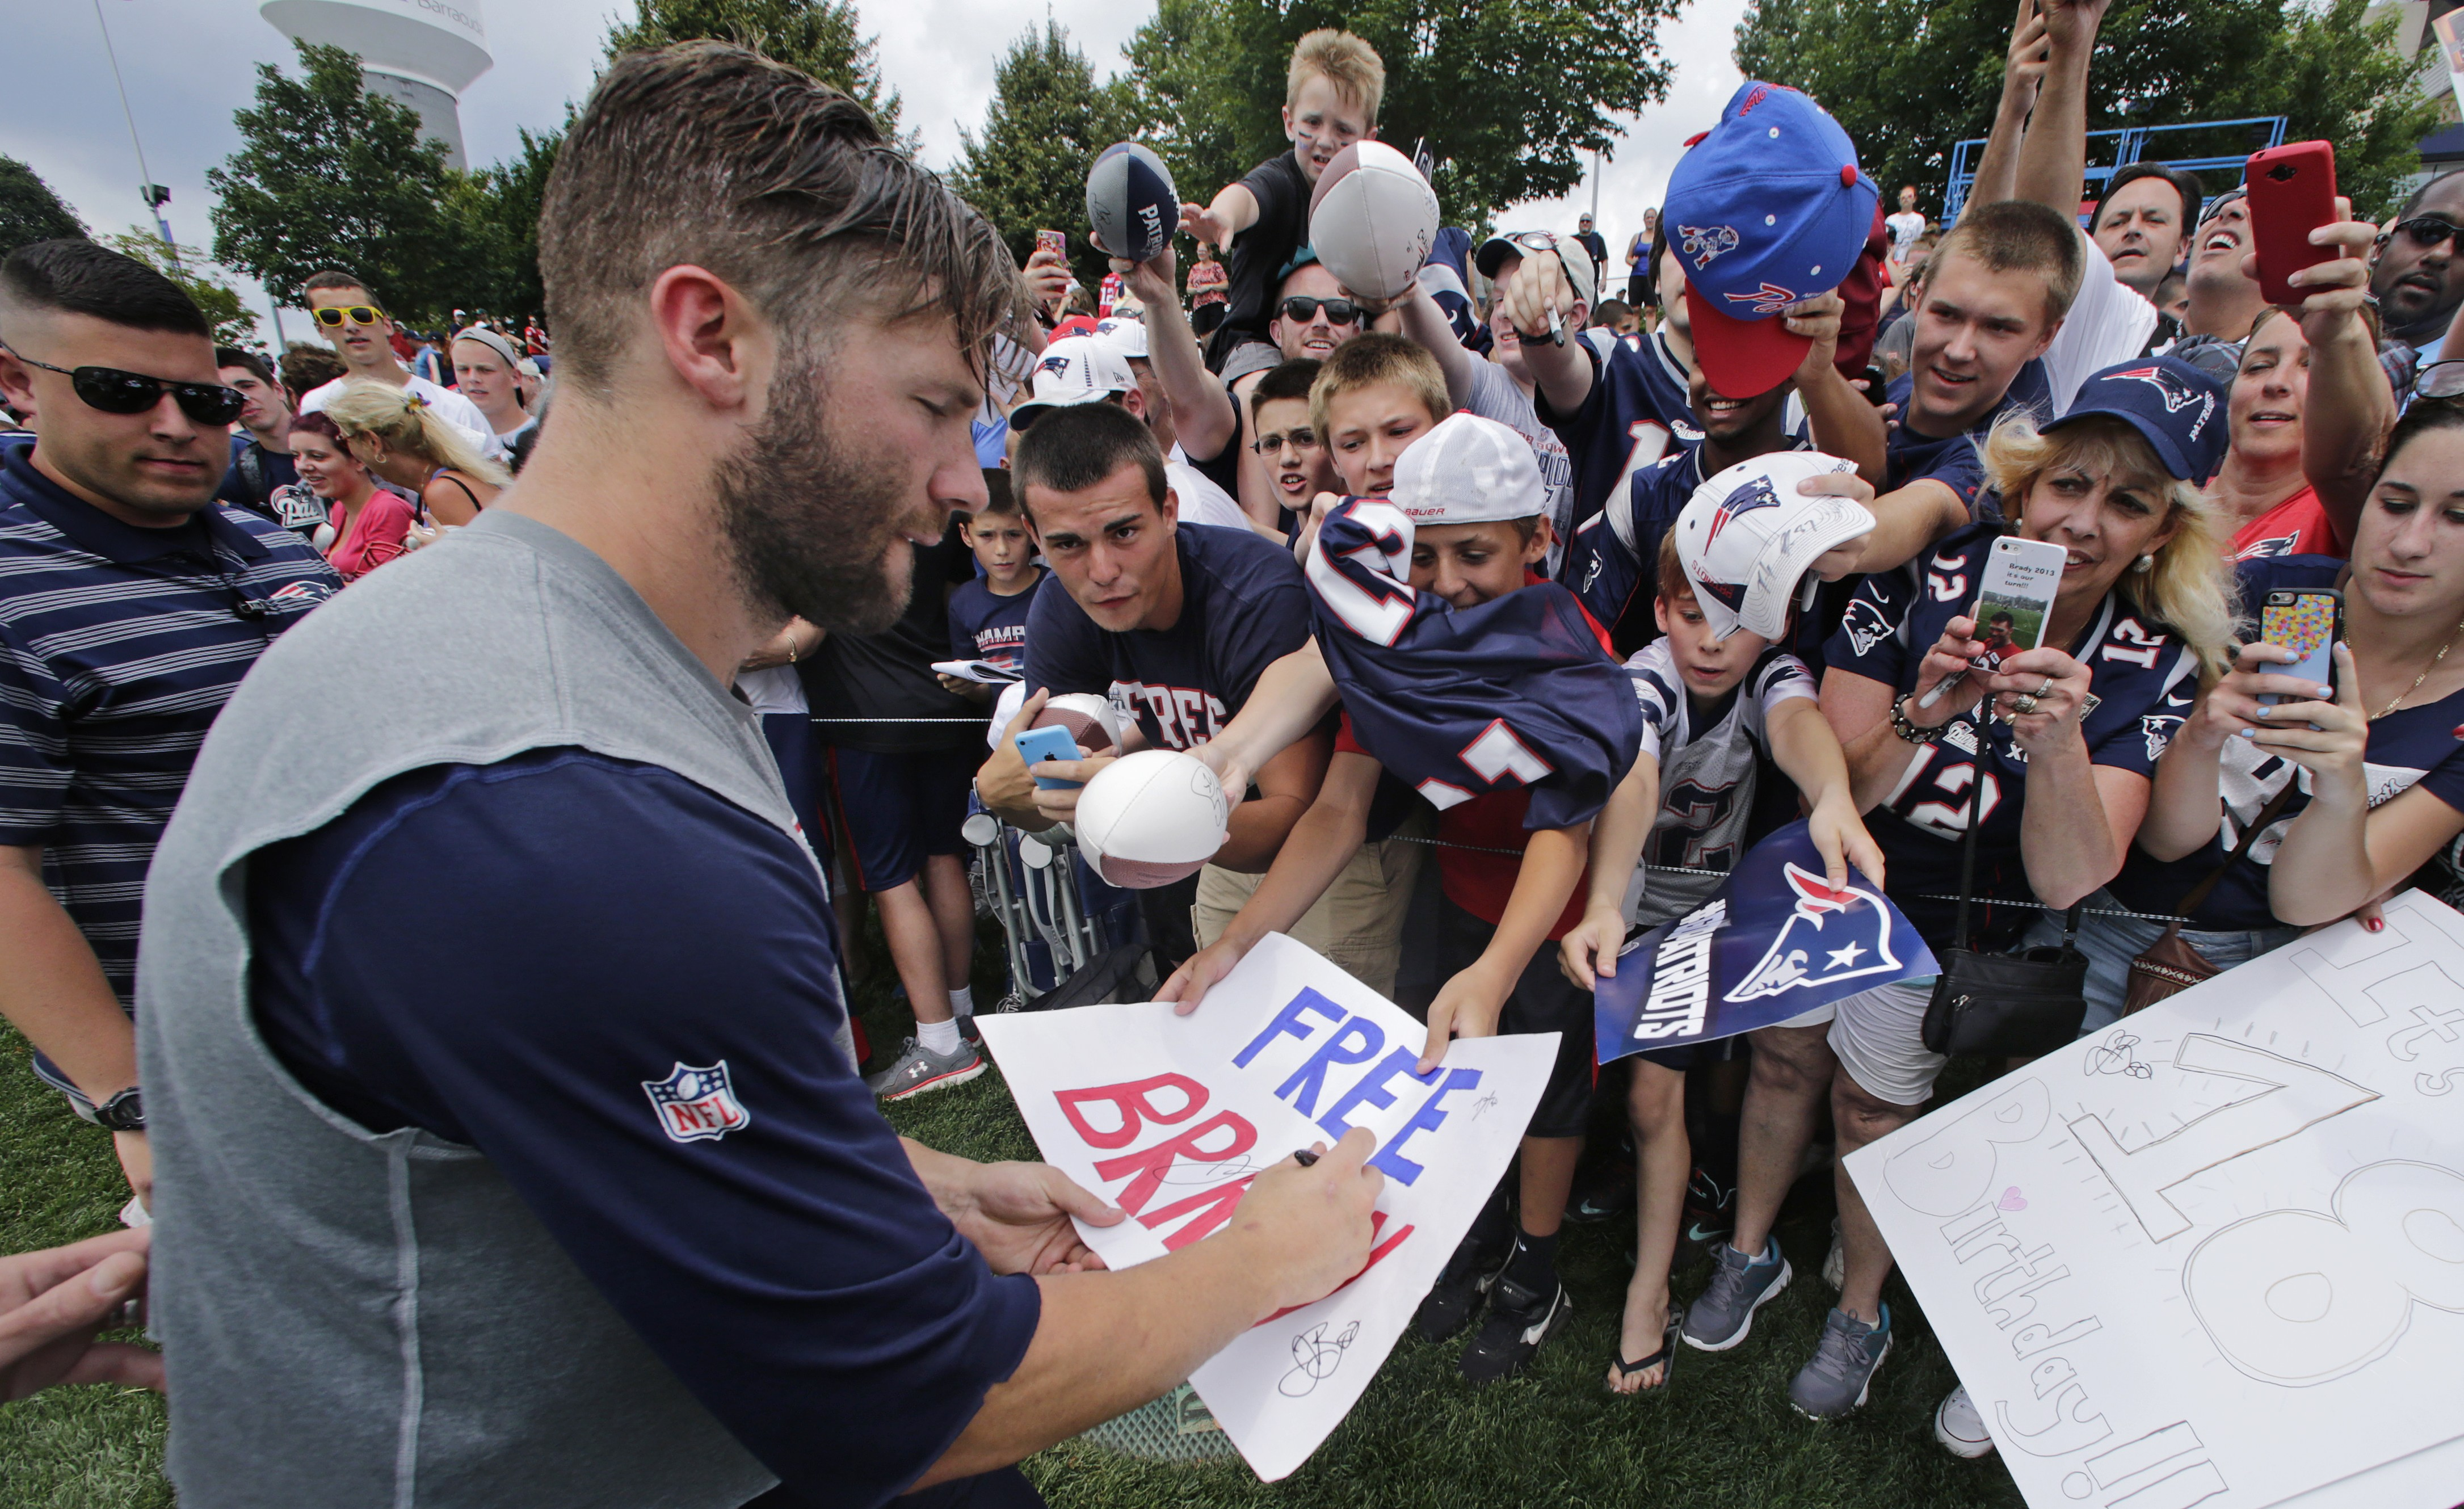 """New England Patriots wide receiver Julian Edelman signs an autograph for a fan on a """"Free Brady"""" sign during an NFL football training camp in Foxborough, Mass., Thursday, July 30, 2015. (AP Photo/Charles Krupa)"""